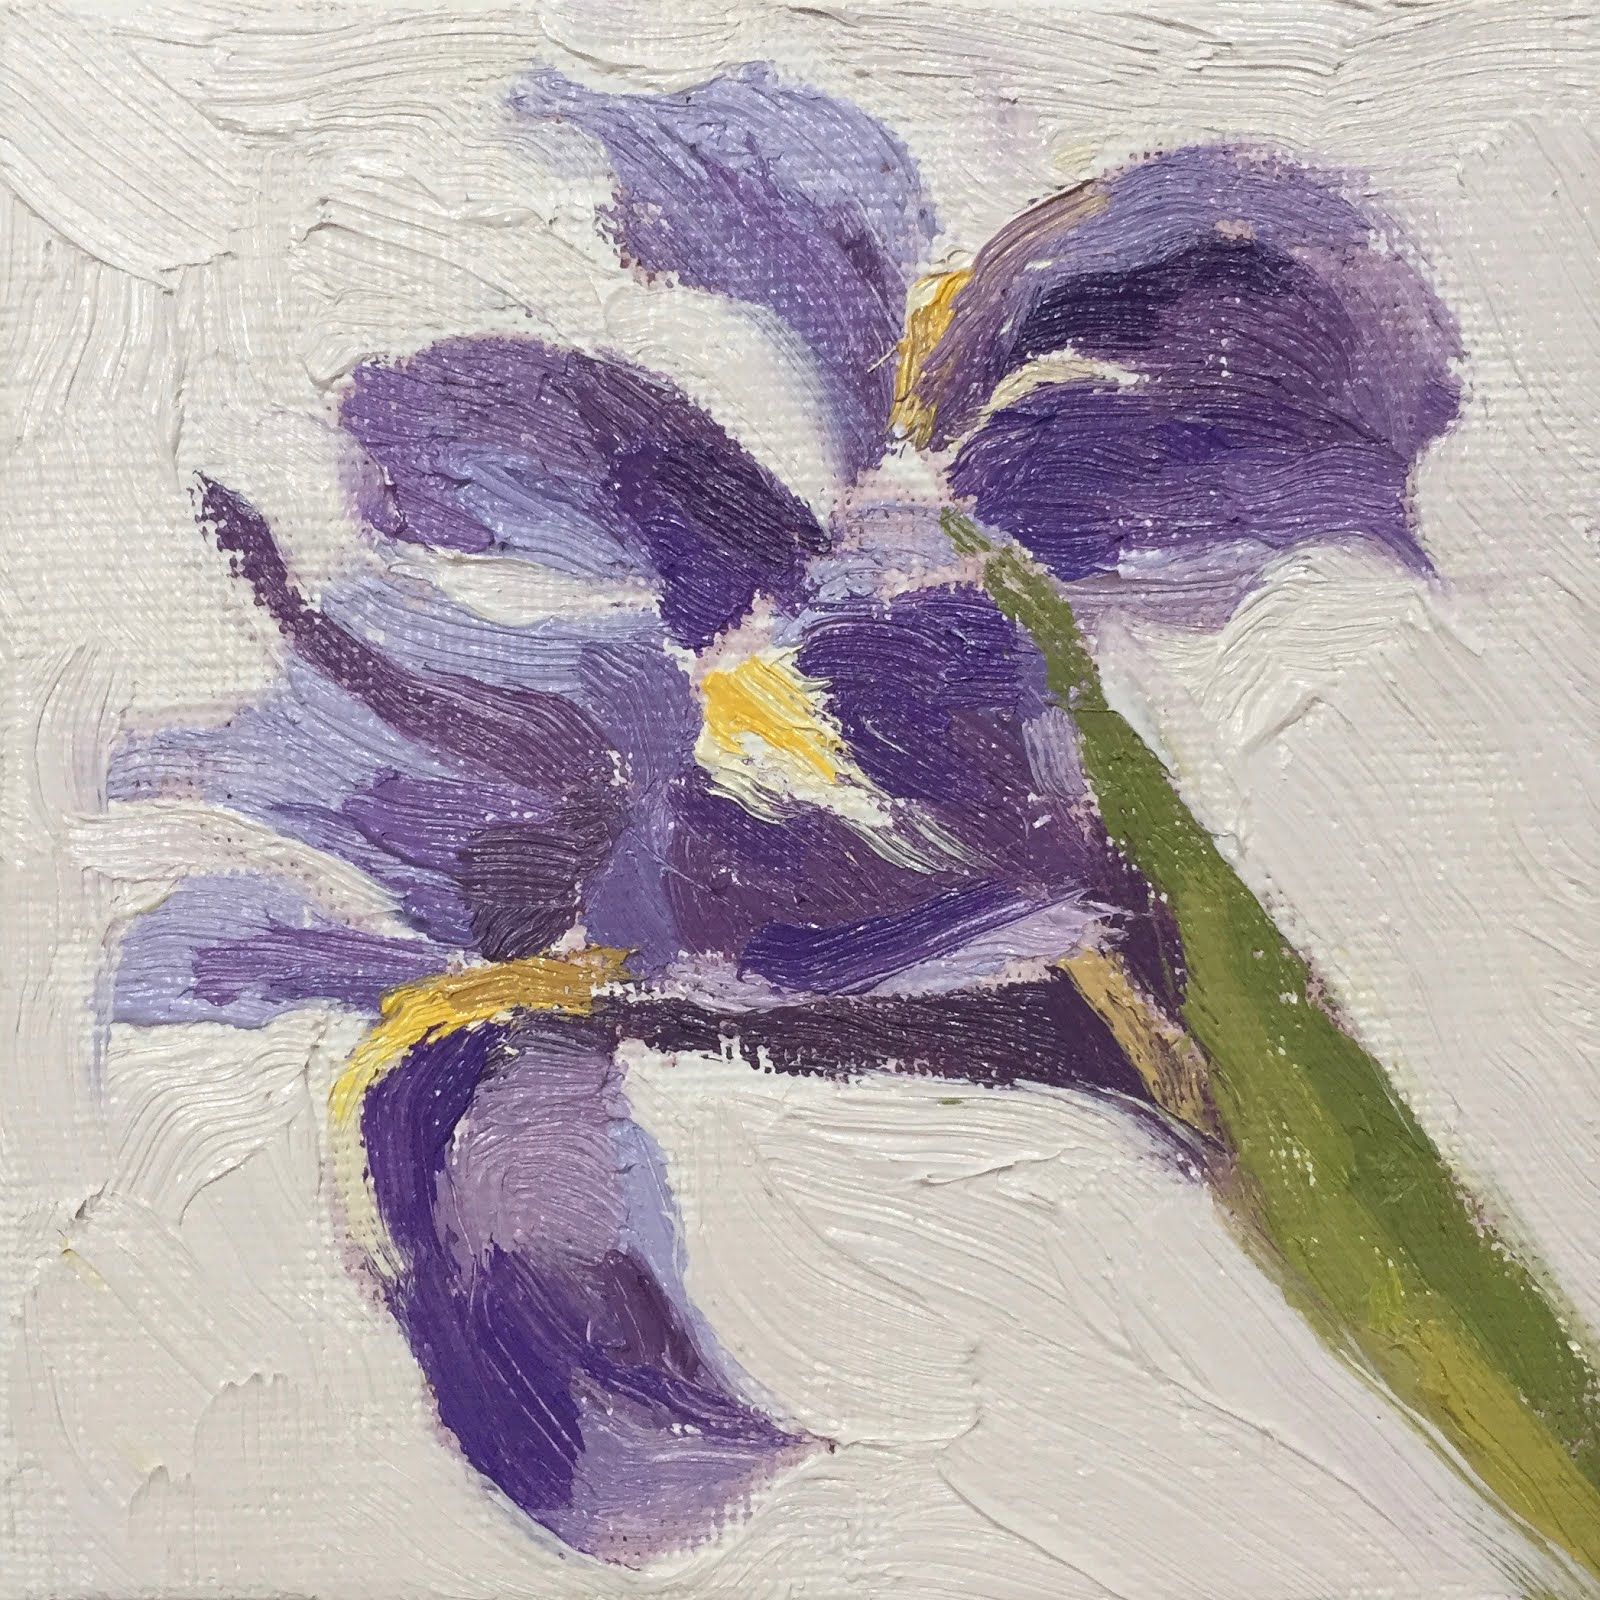 Clare bowen artist daily painting 21 an iris flower 4x4 it was good to try the iris again a close up small painting easier to focus on the colours and tones when there is just a single flower izmirmasajfo